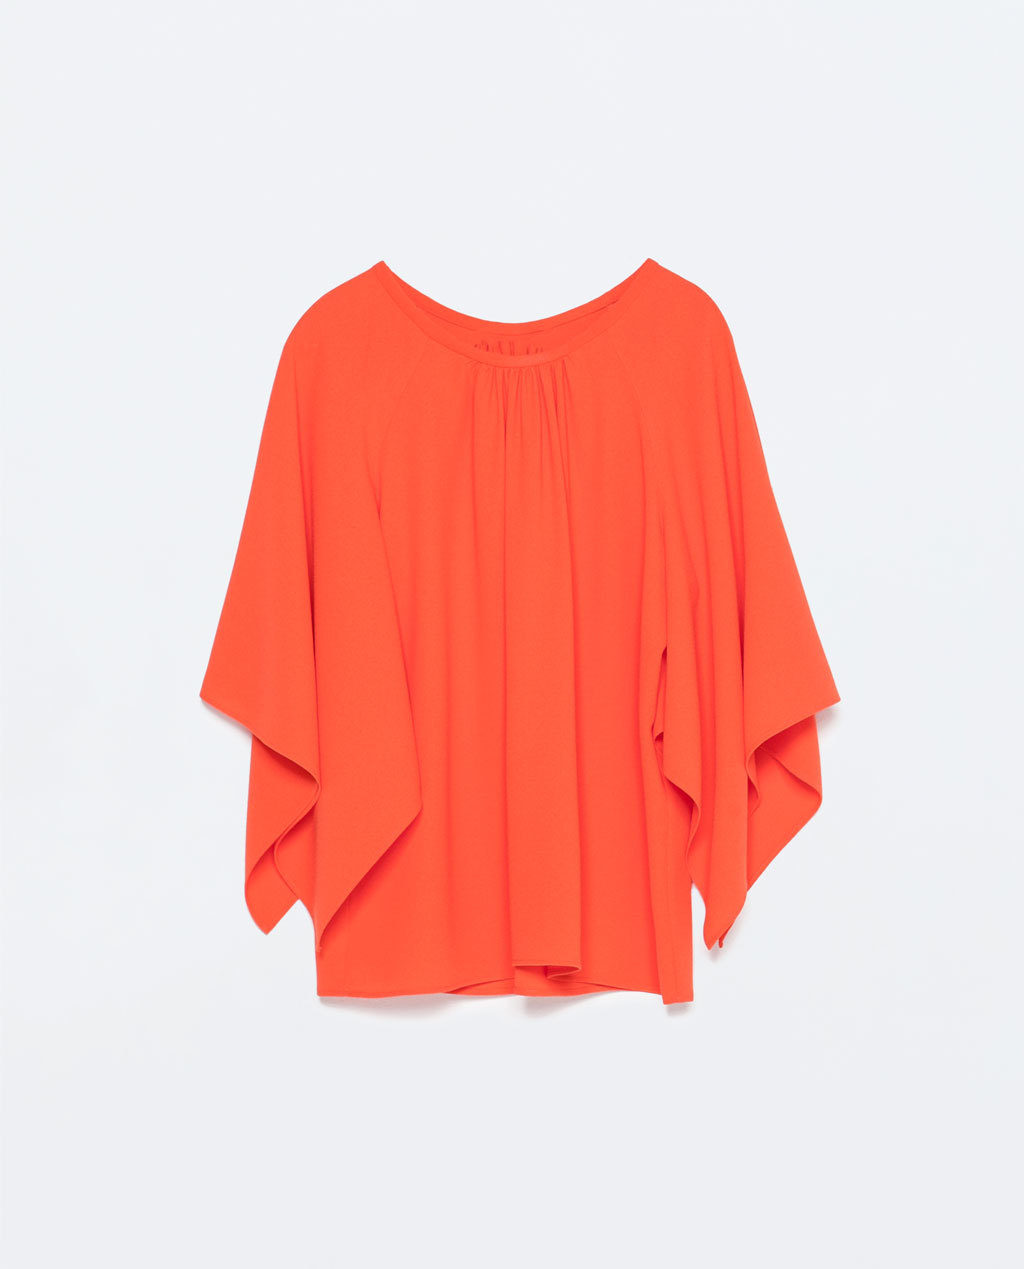 Kimono Sleeve Top - neckline: round neck; pattern: plain; sleeve style: kimono; length: below the bottom; predominant colour: bright orange; occasions: casual, evening, creative work; style: top; fit: loose; sleeve length: 3/4 length; pattern type: fabric; texture group: other - light to midweight; season: s/s 2015; wardrobe: highlight